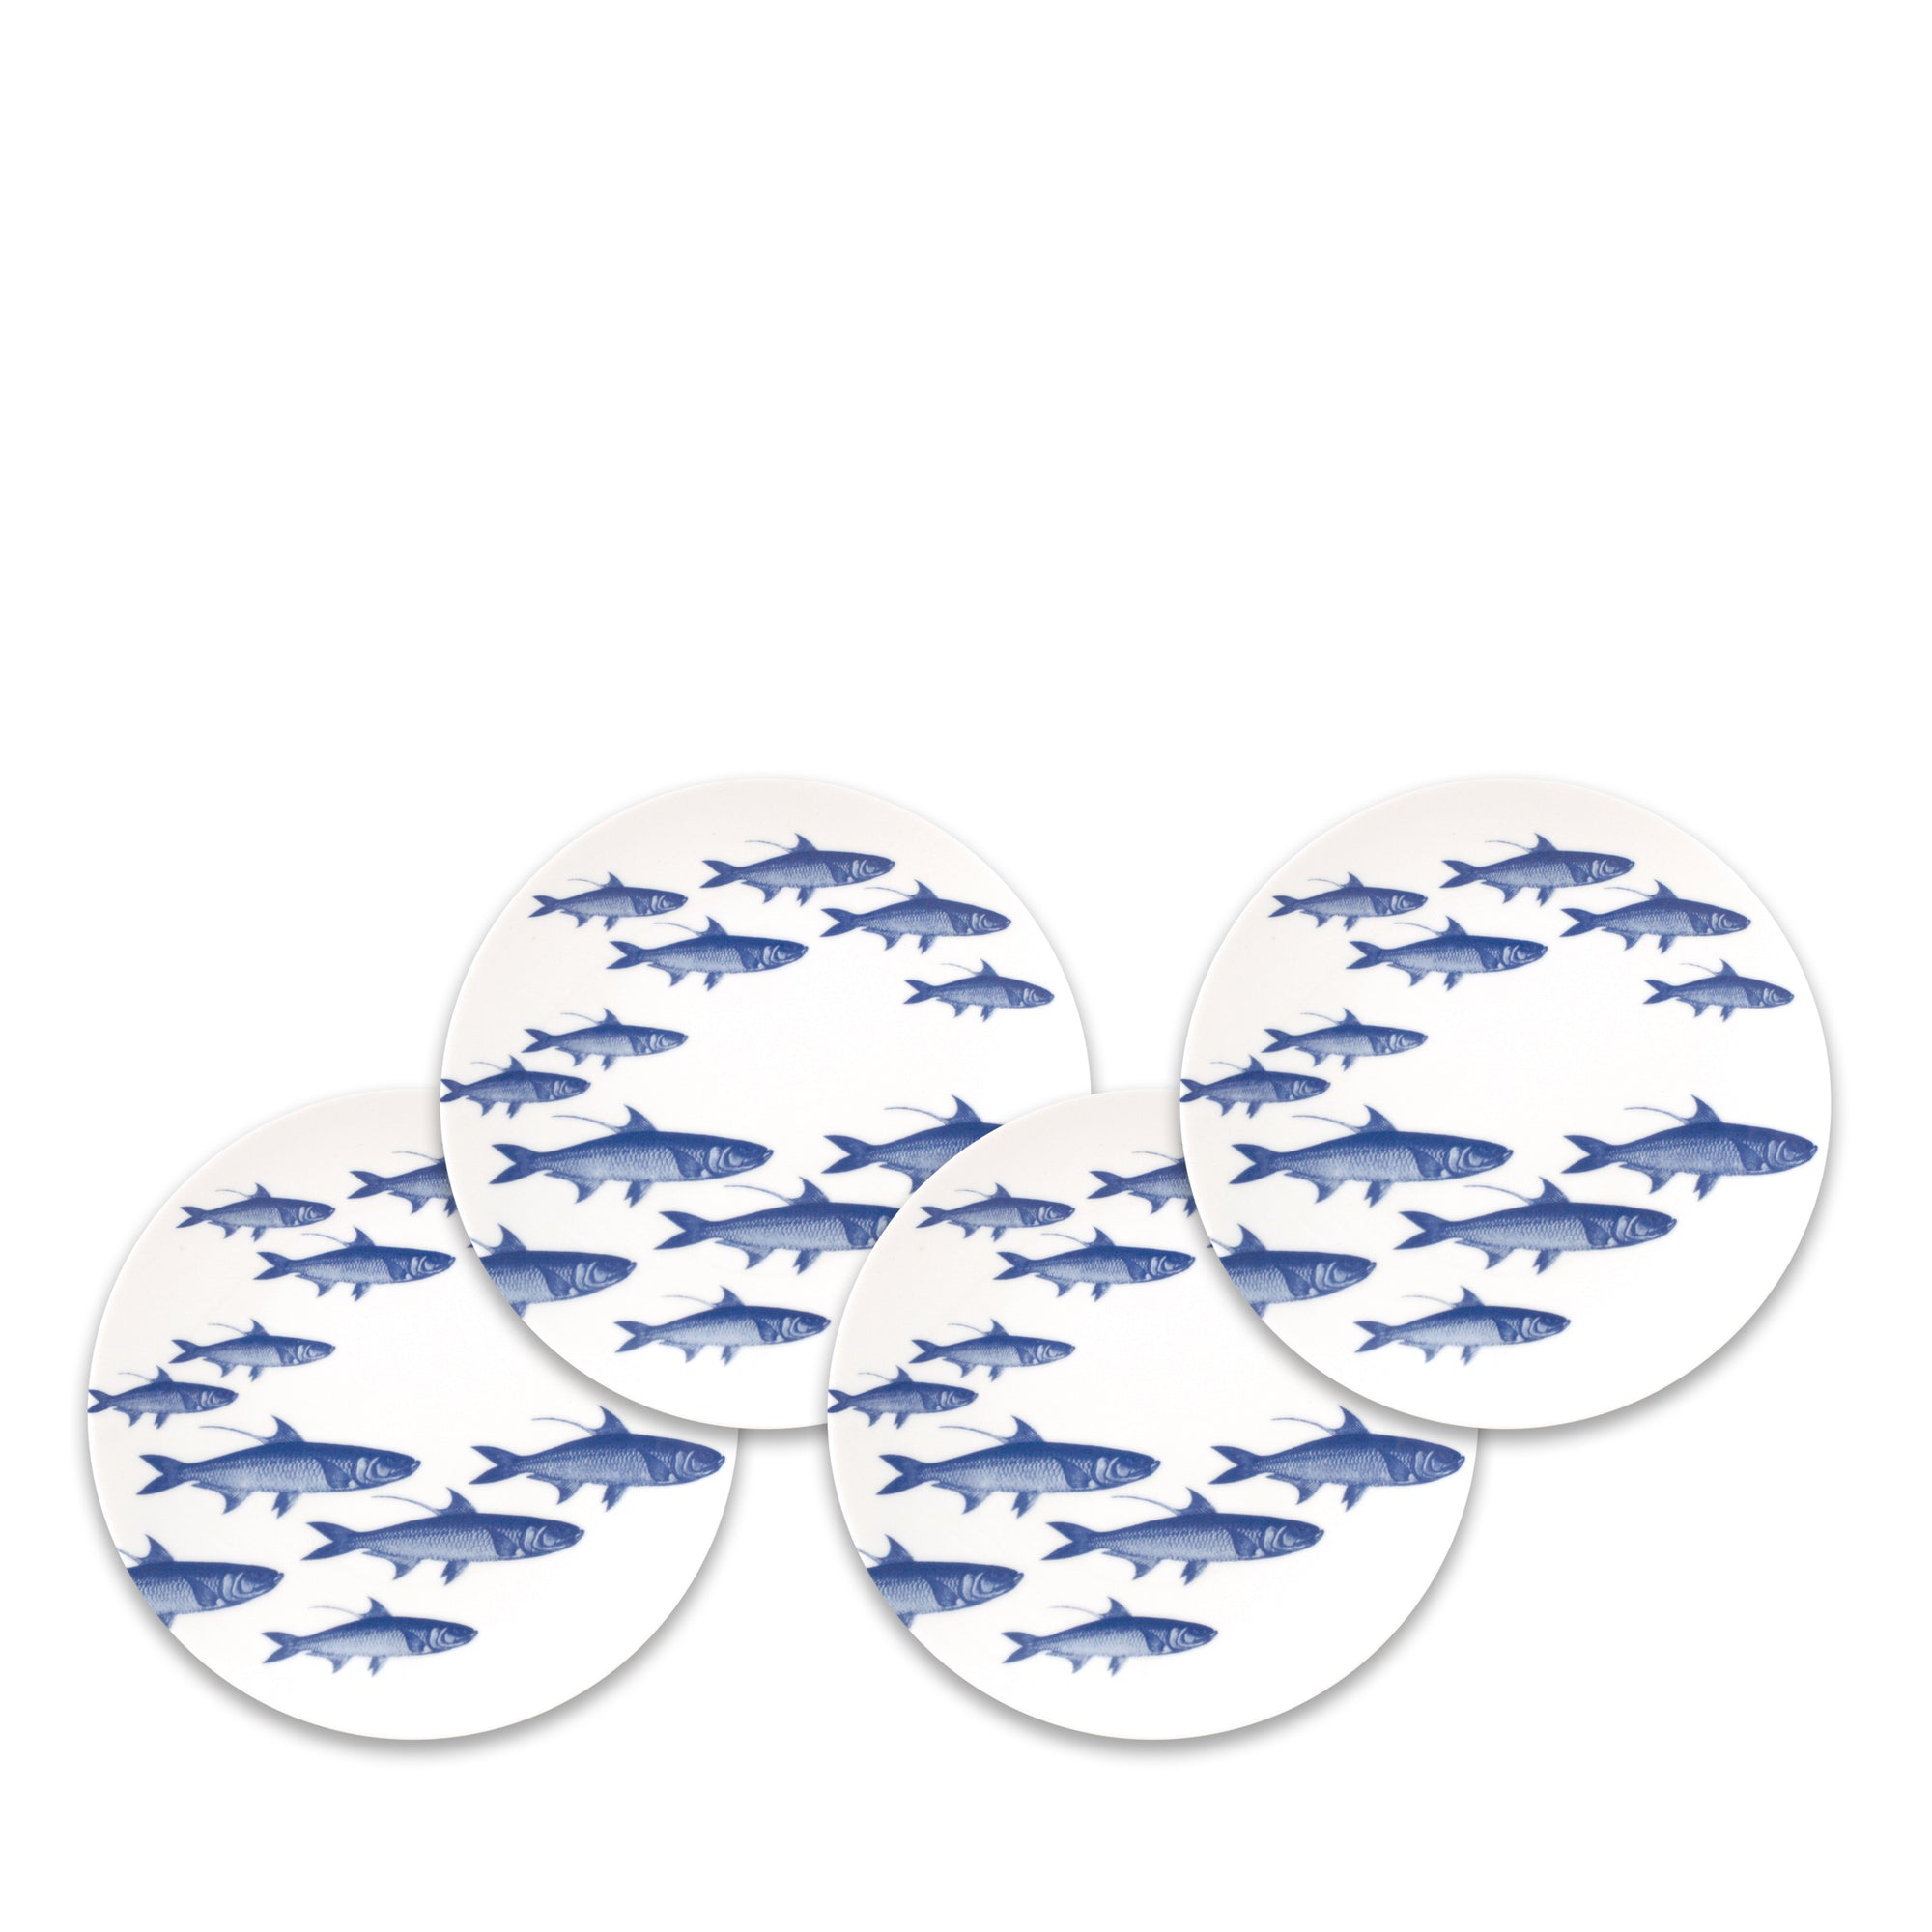 School of Fish Canapé Plates Boxed Set/4 - Caskata